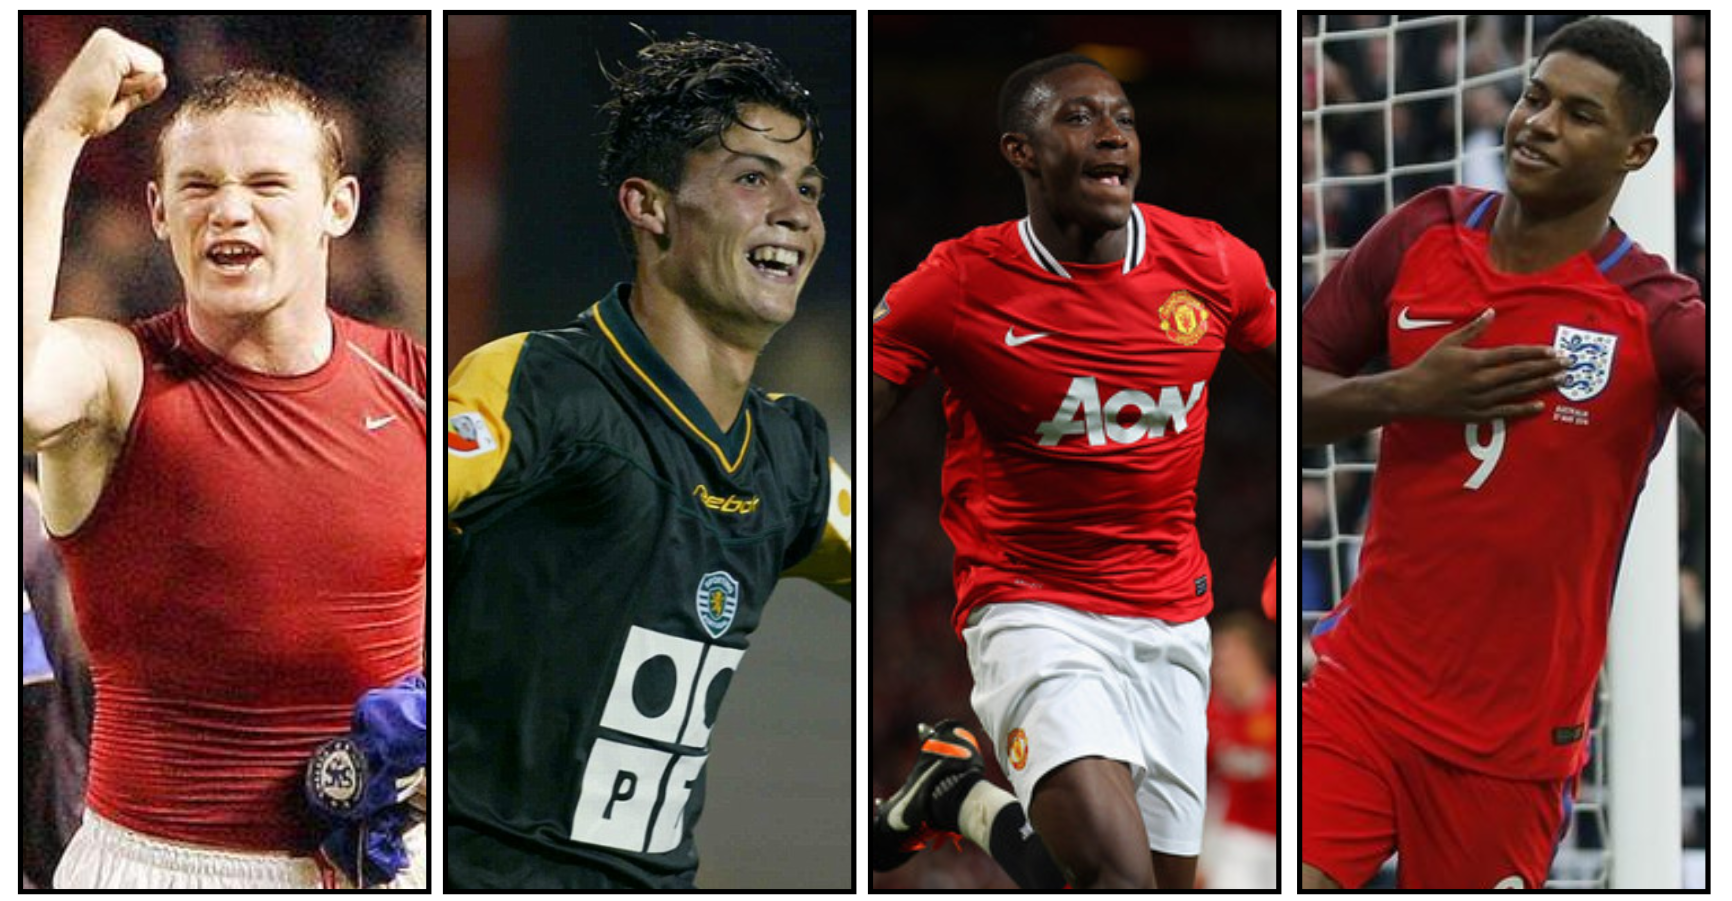 Man Uniteds scoring record will always be in reach so long as they value youth